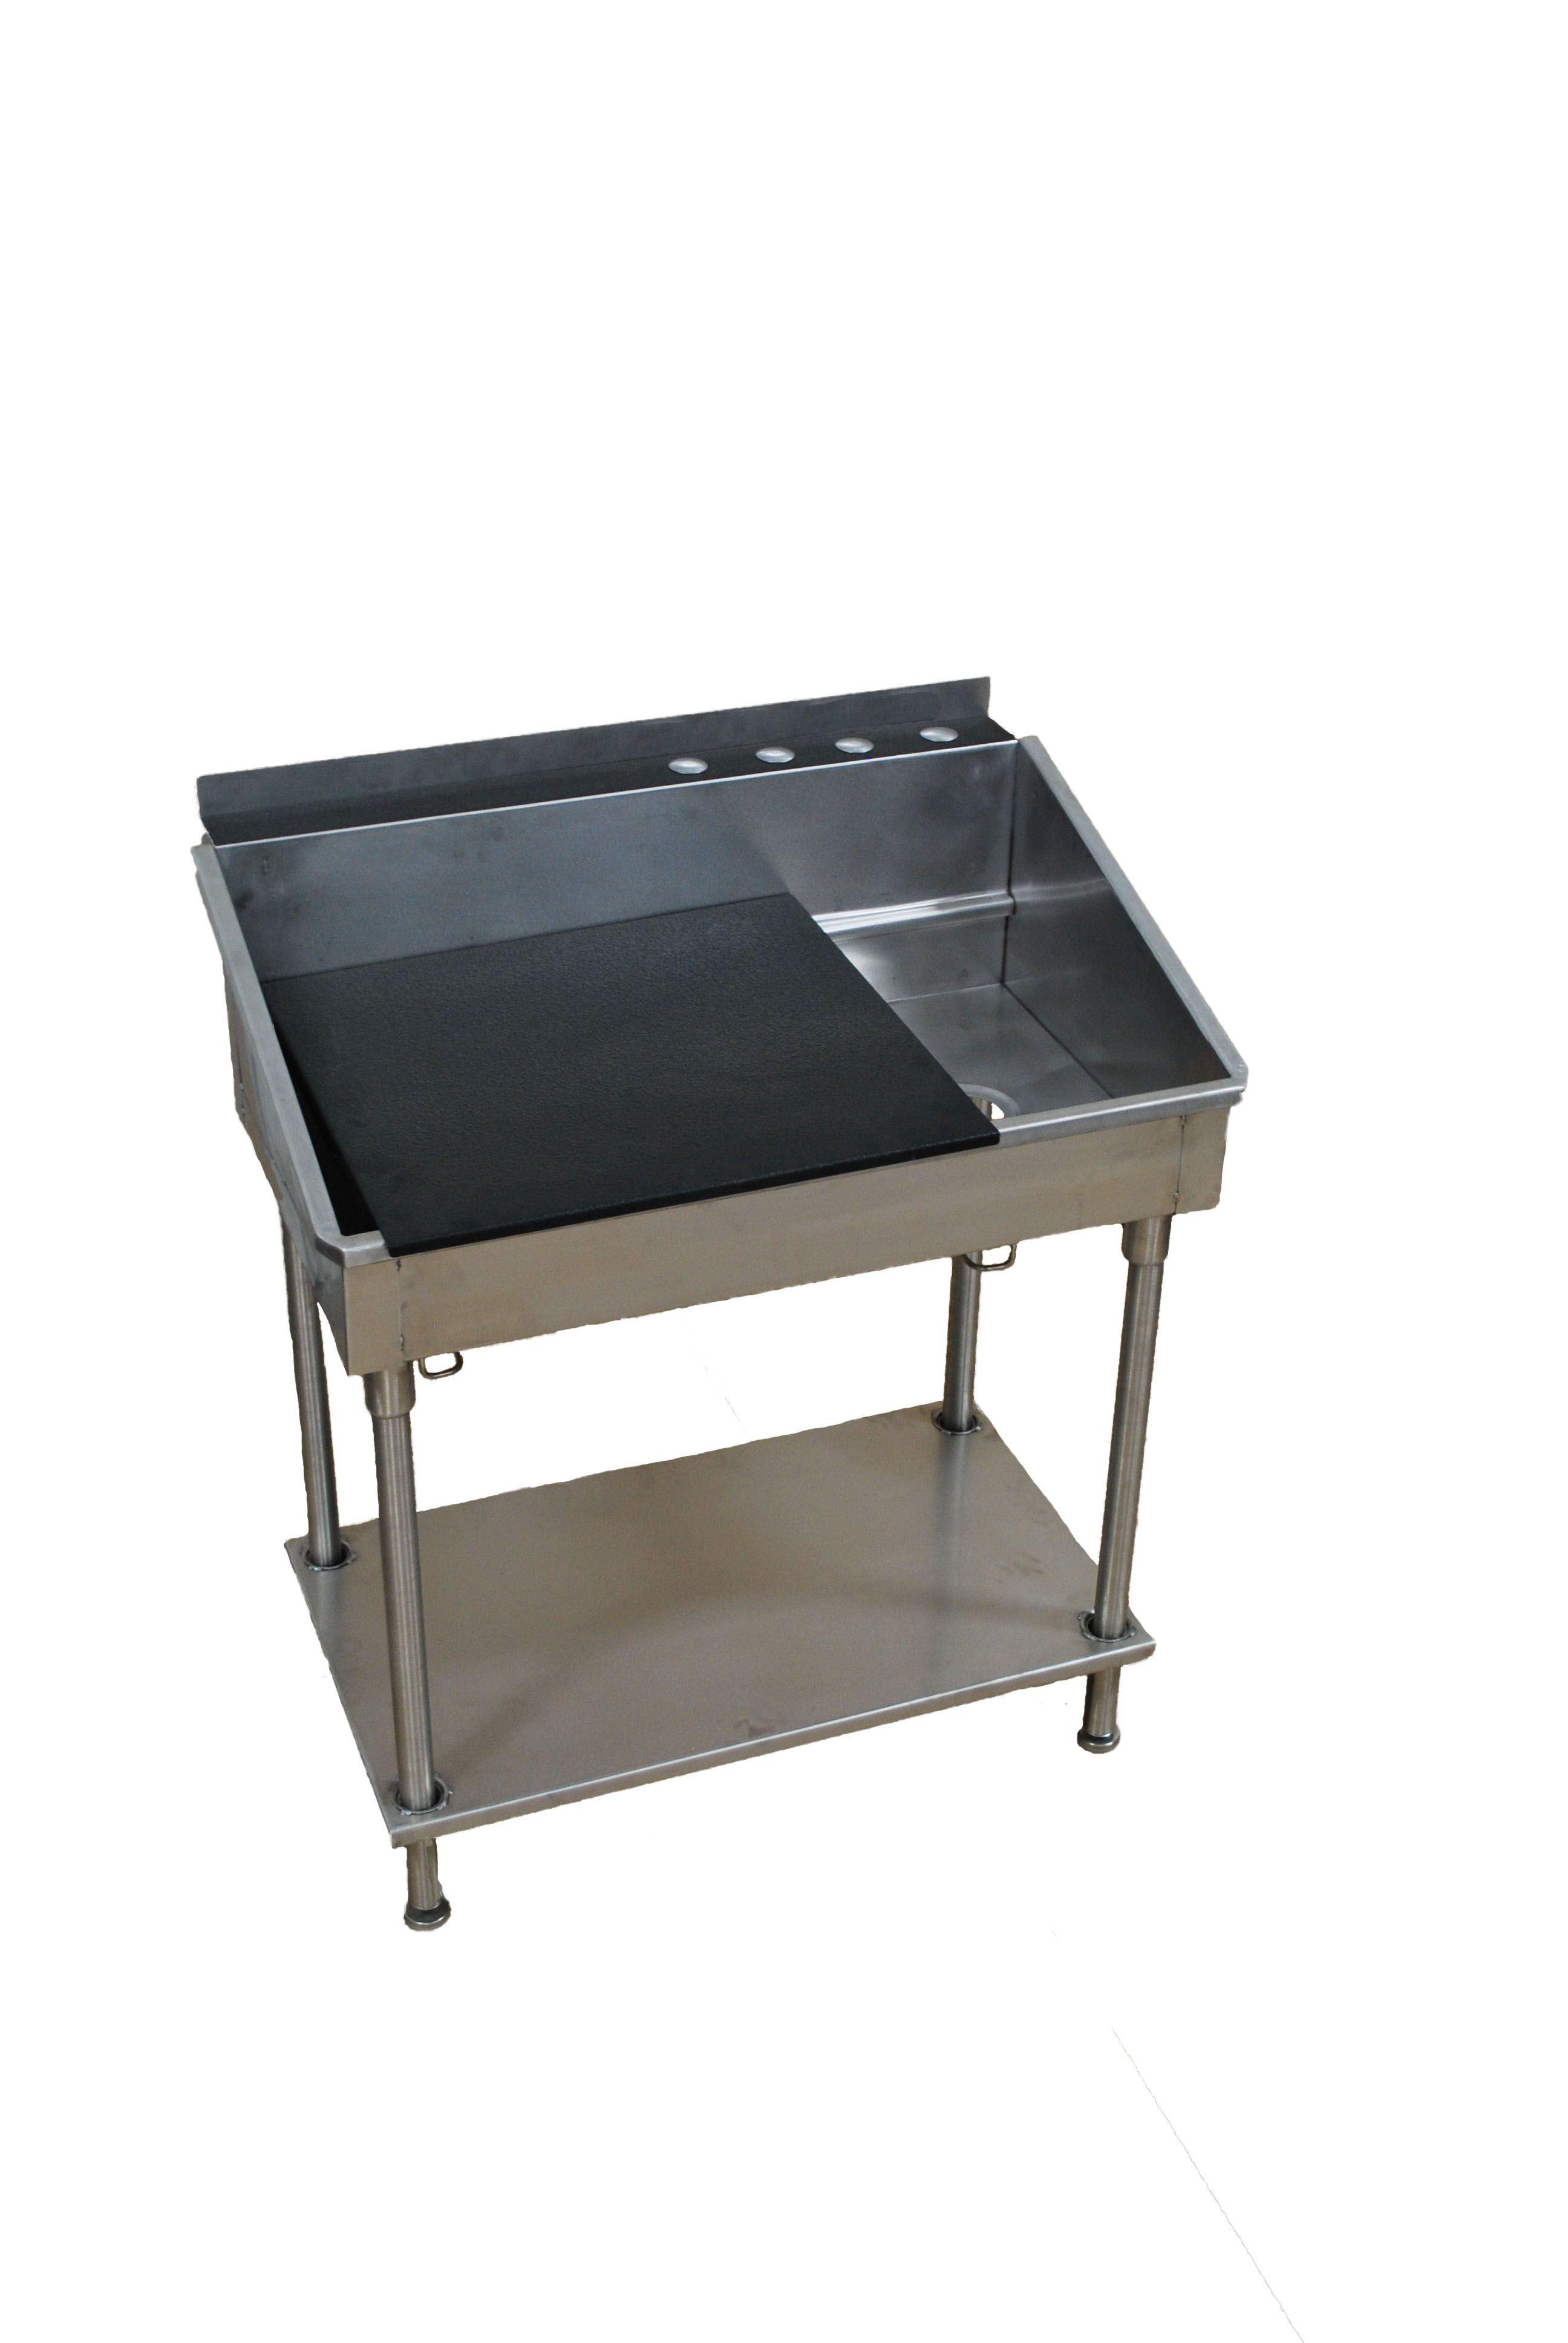 Quality Sinks Made In The Usa Utility Sink Industrial Kitchen Design Adjustable Shelving